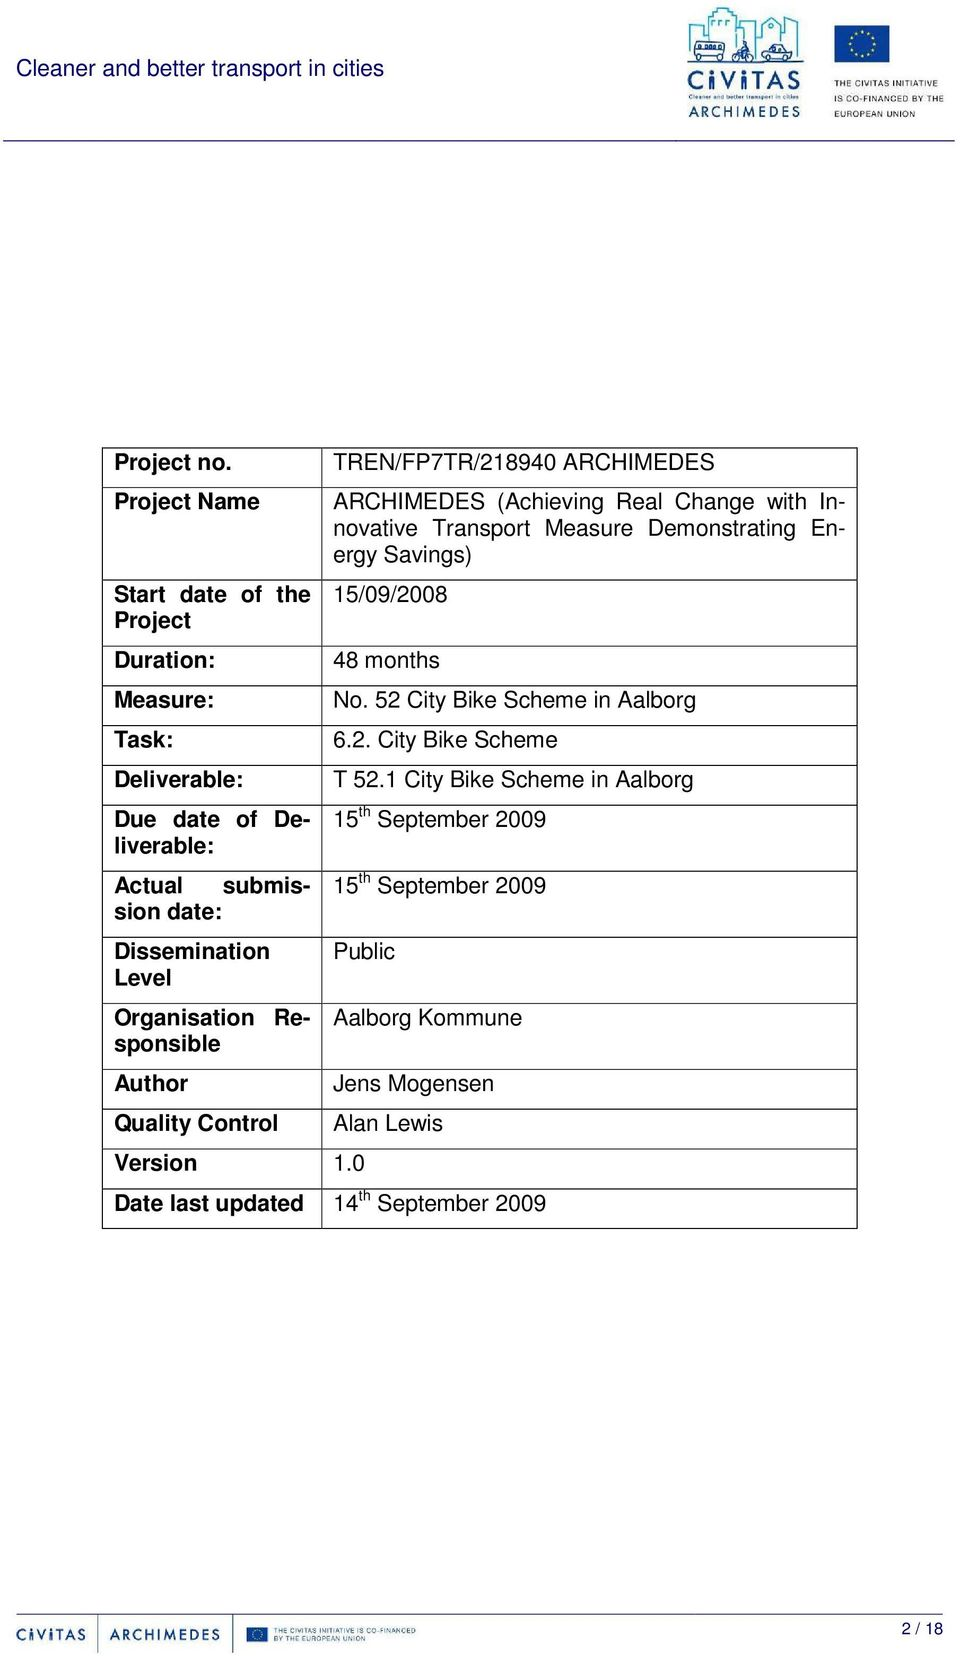 Organisation Responsible Author Quality Control TREN/FP7TR/218940 ARCHIMEDES ARCHIMEDES (Achieving Real Change with Innovative Transport Measure